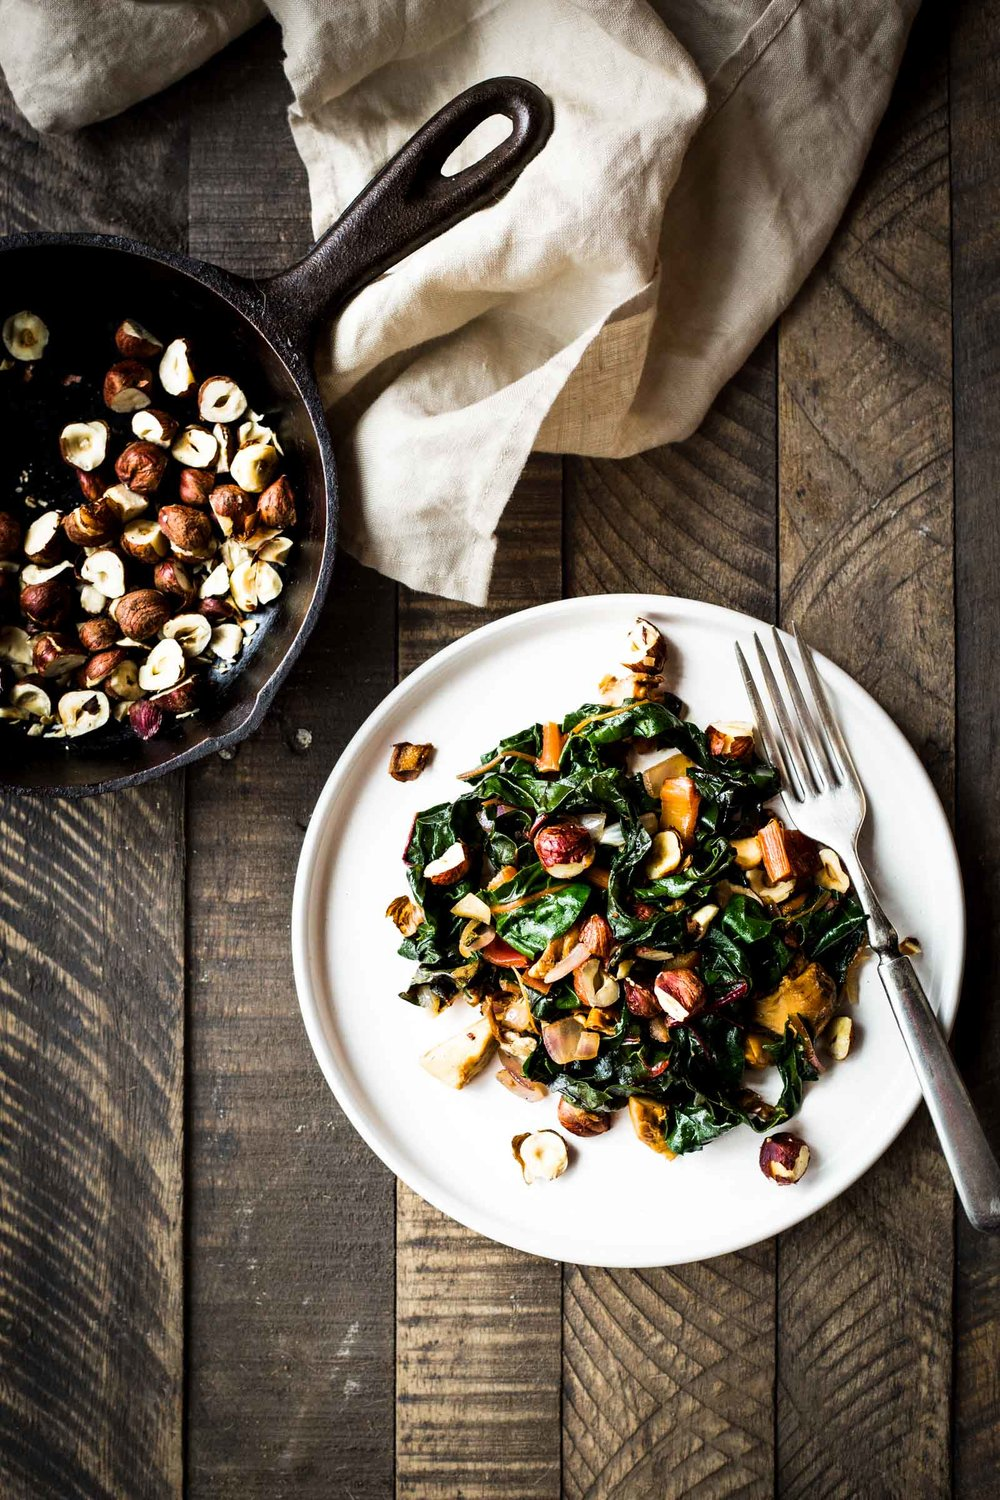 Chard With Hazelnuts & Mushrooms